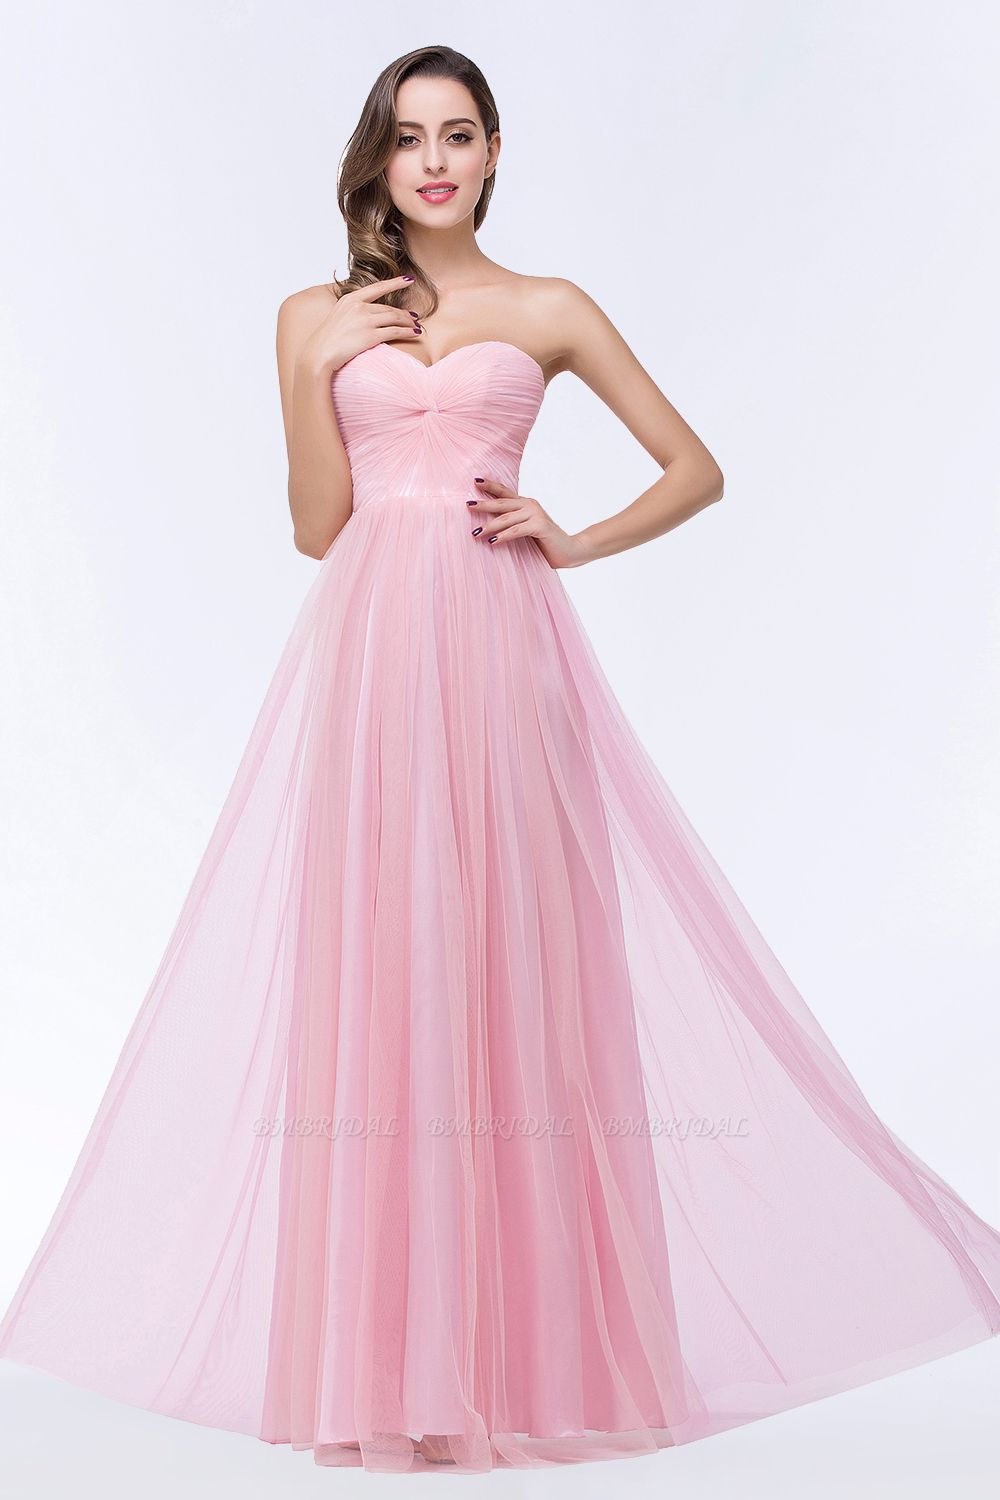 BMbridal Chic Tulle Ruffle Strapless Sweetheart Floor-Length Bridesmaid Dresses